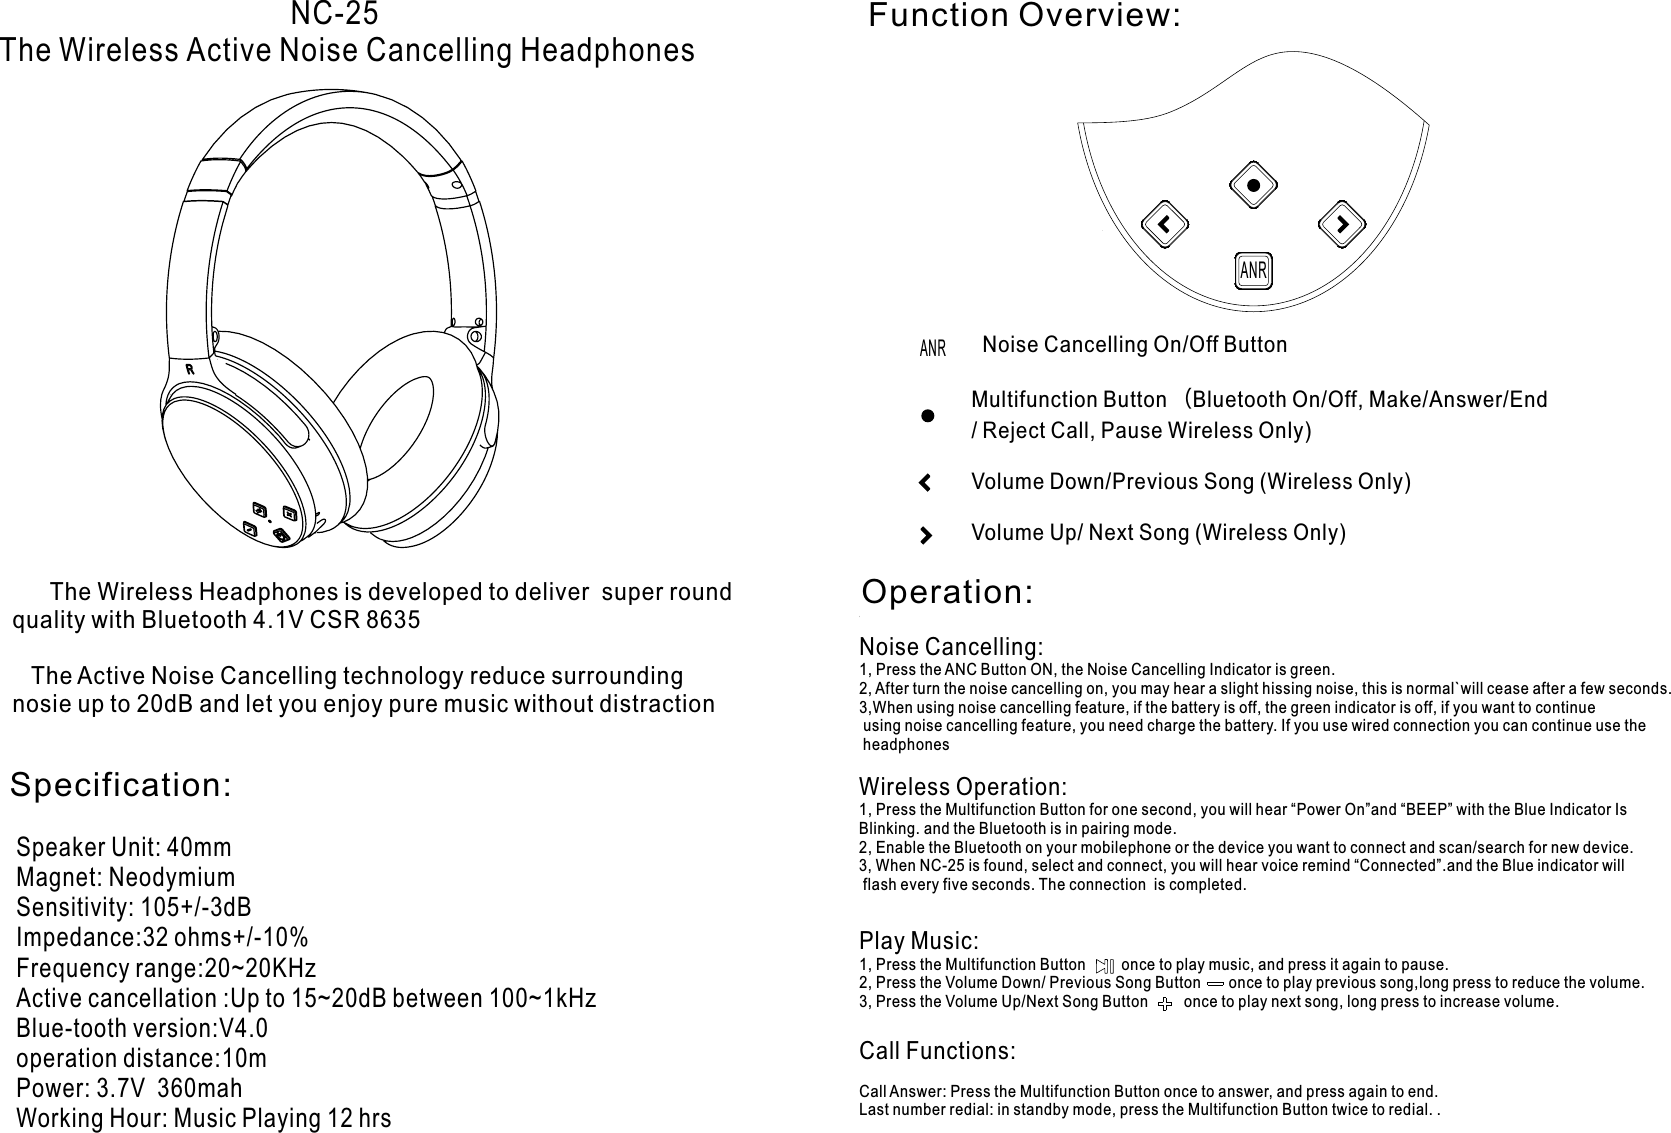 4.5btnc turn on noise cancelling manual